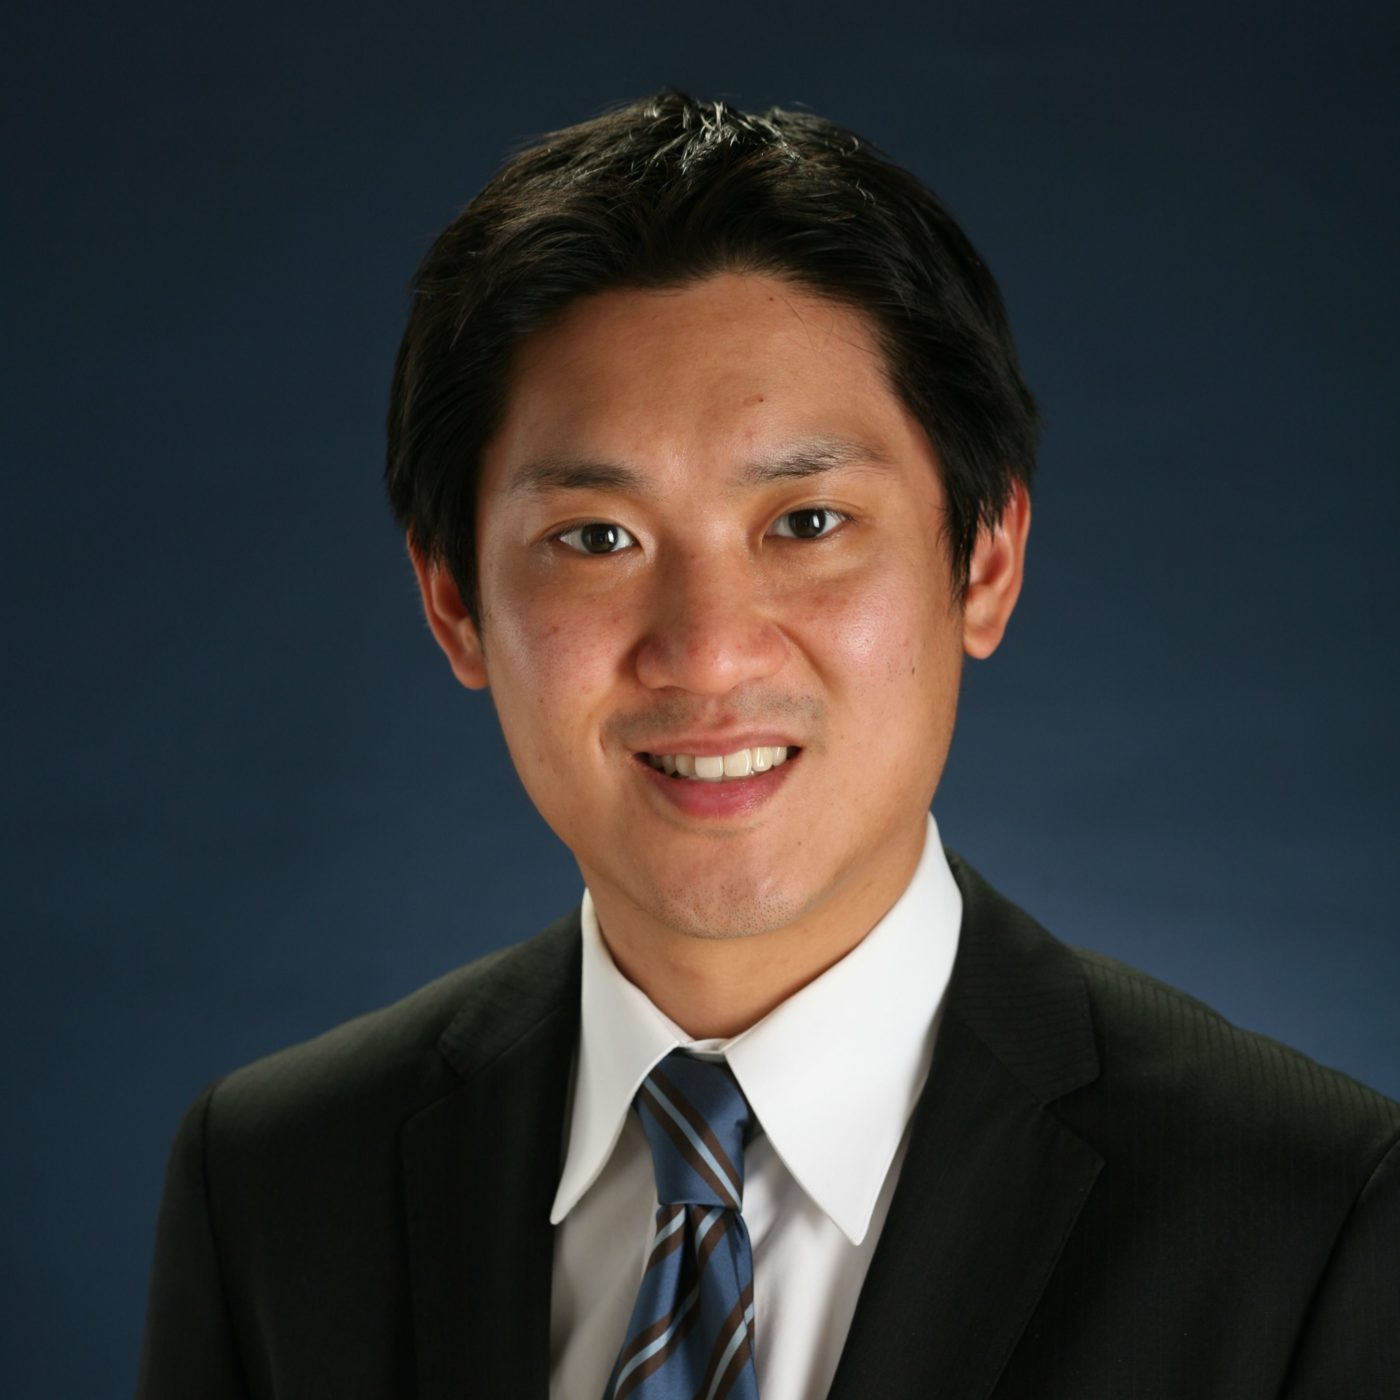 Consulting Cardiologists: Maximilian H. Lee, MD, FACC